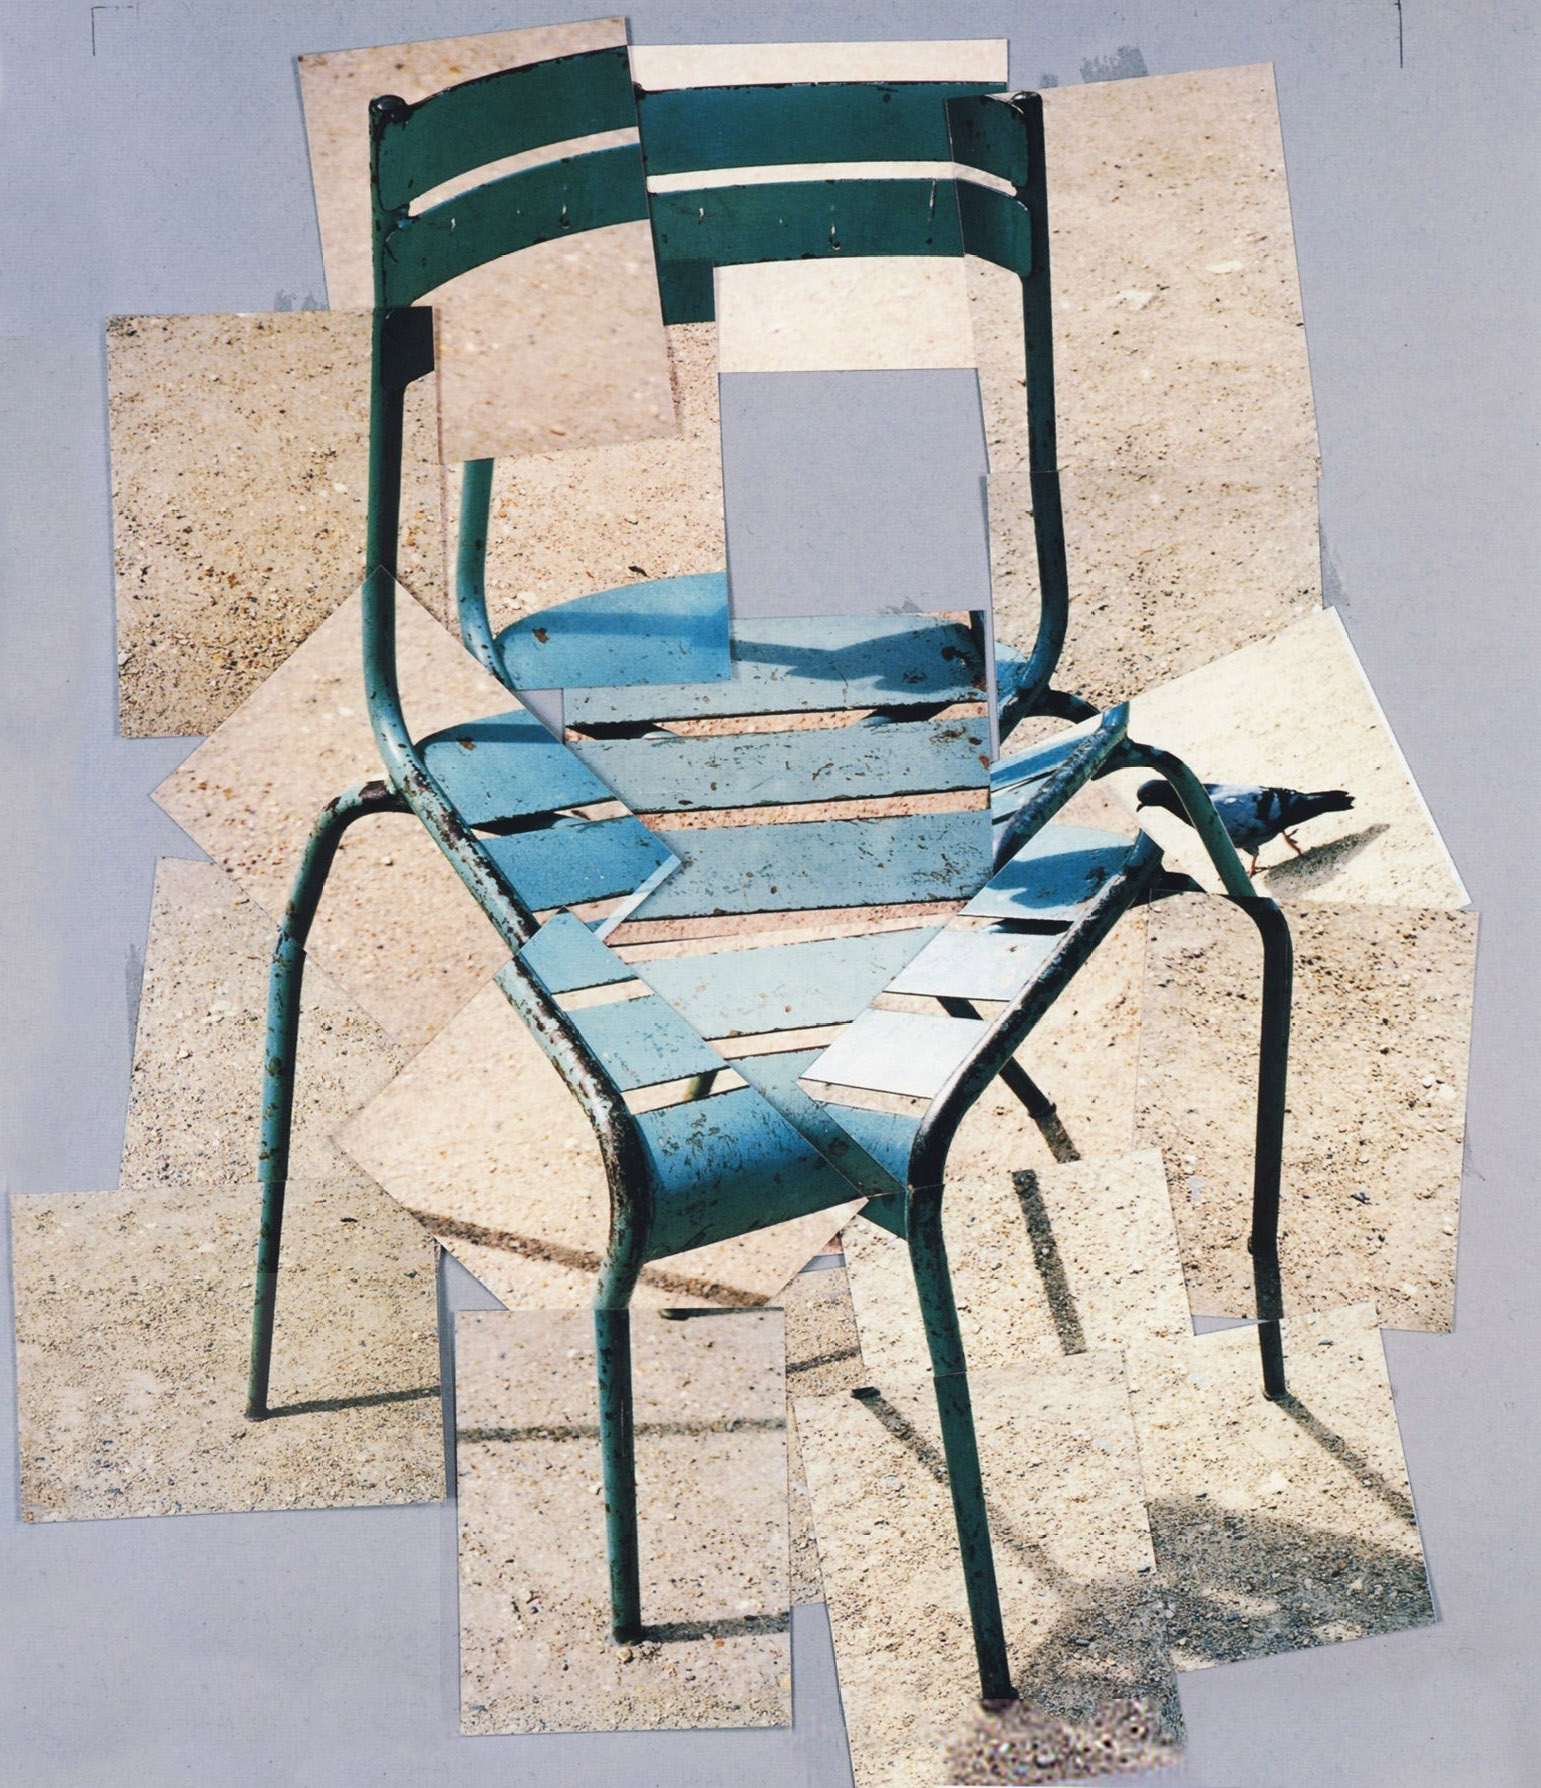 David Hockney Chair Drawings David Hockney 'chair' 1985